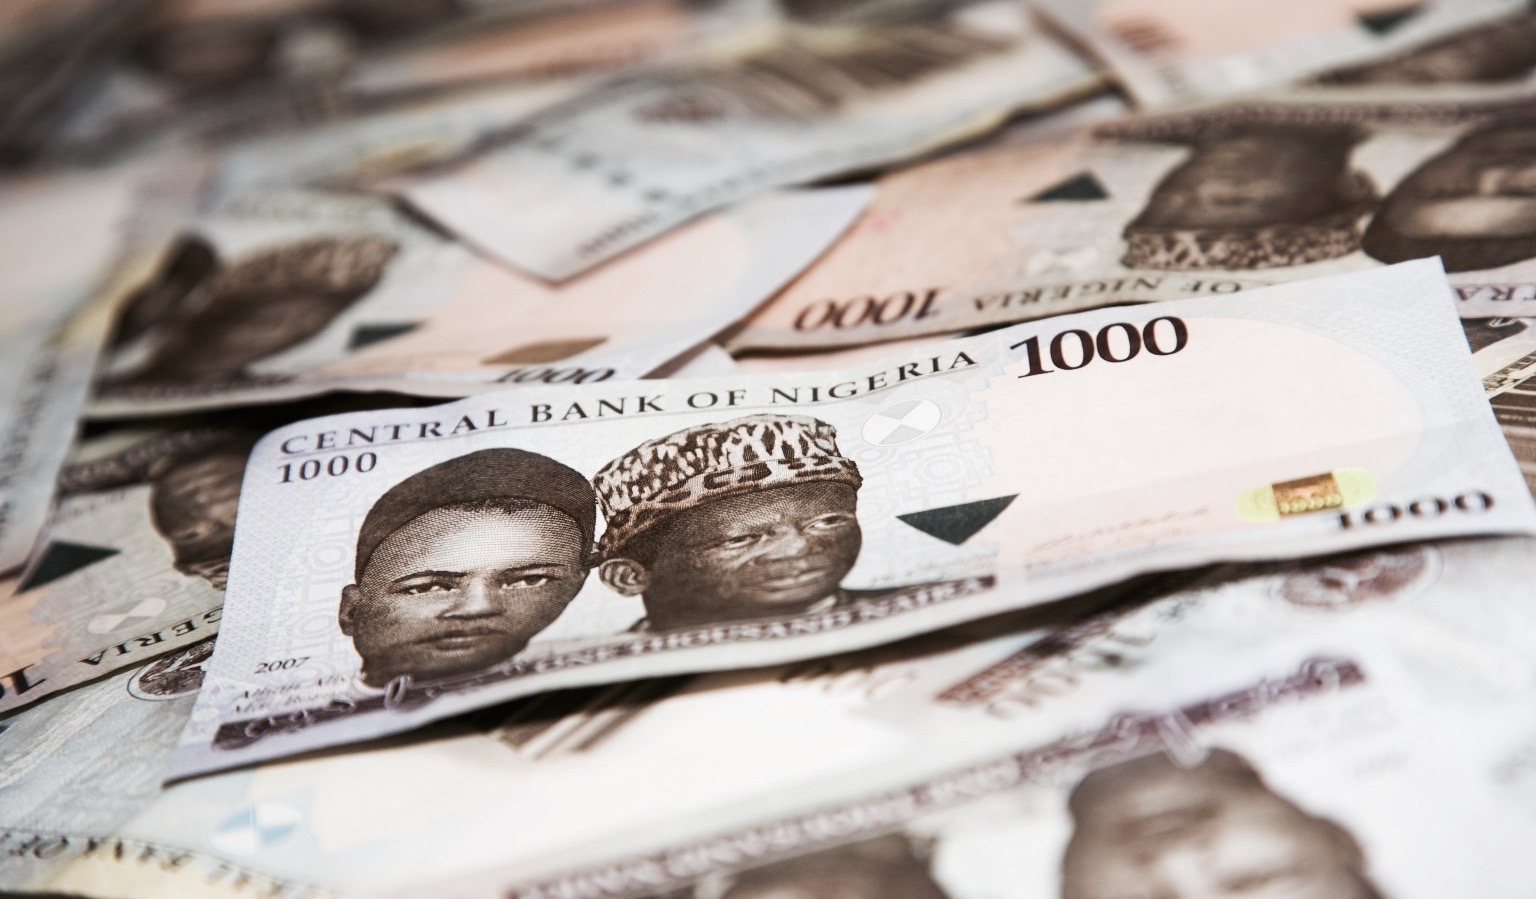 1000 naira bills (Nigerian currency), at f/6.3 and a 105mm focal length, depth-of-field is limited. (Photo by: MyLoupe/Universal Images Goup via Getty Images)